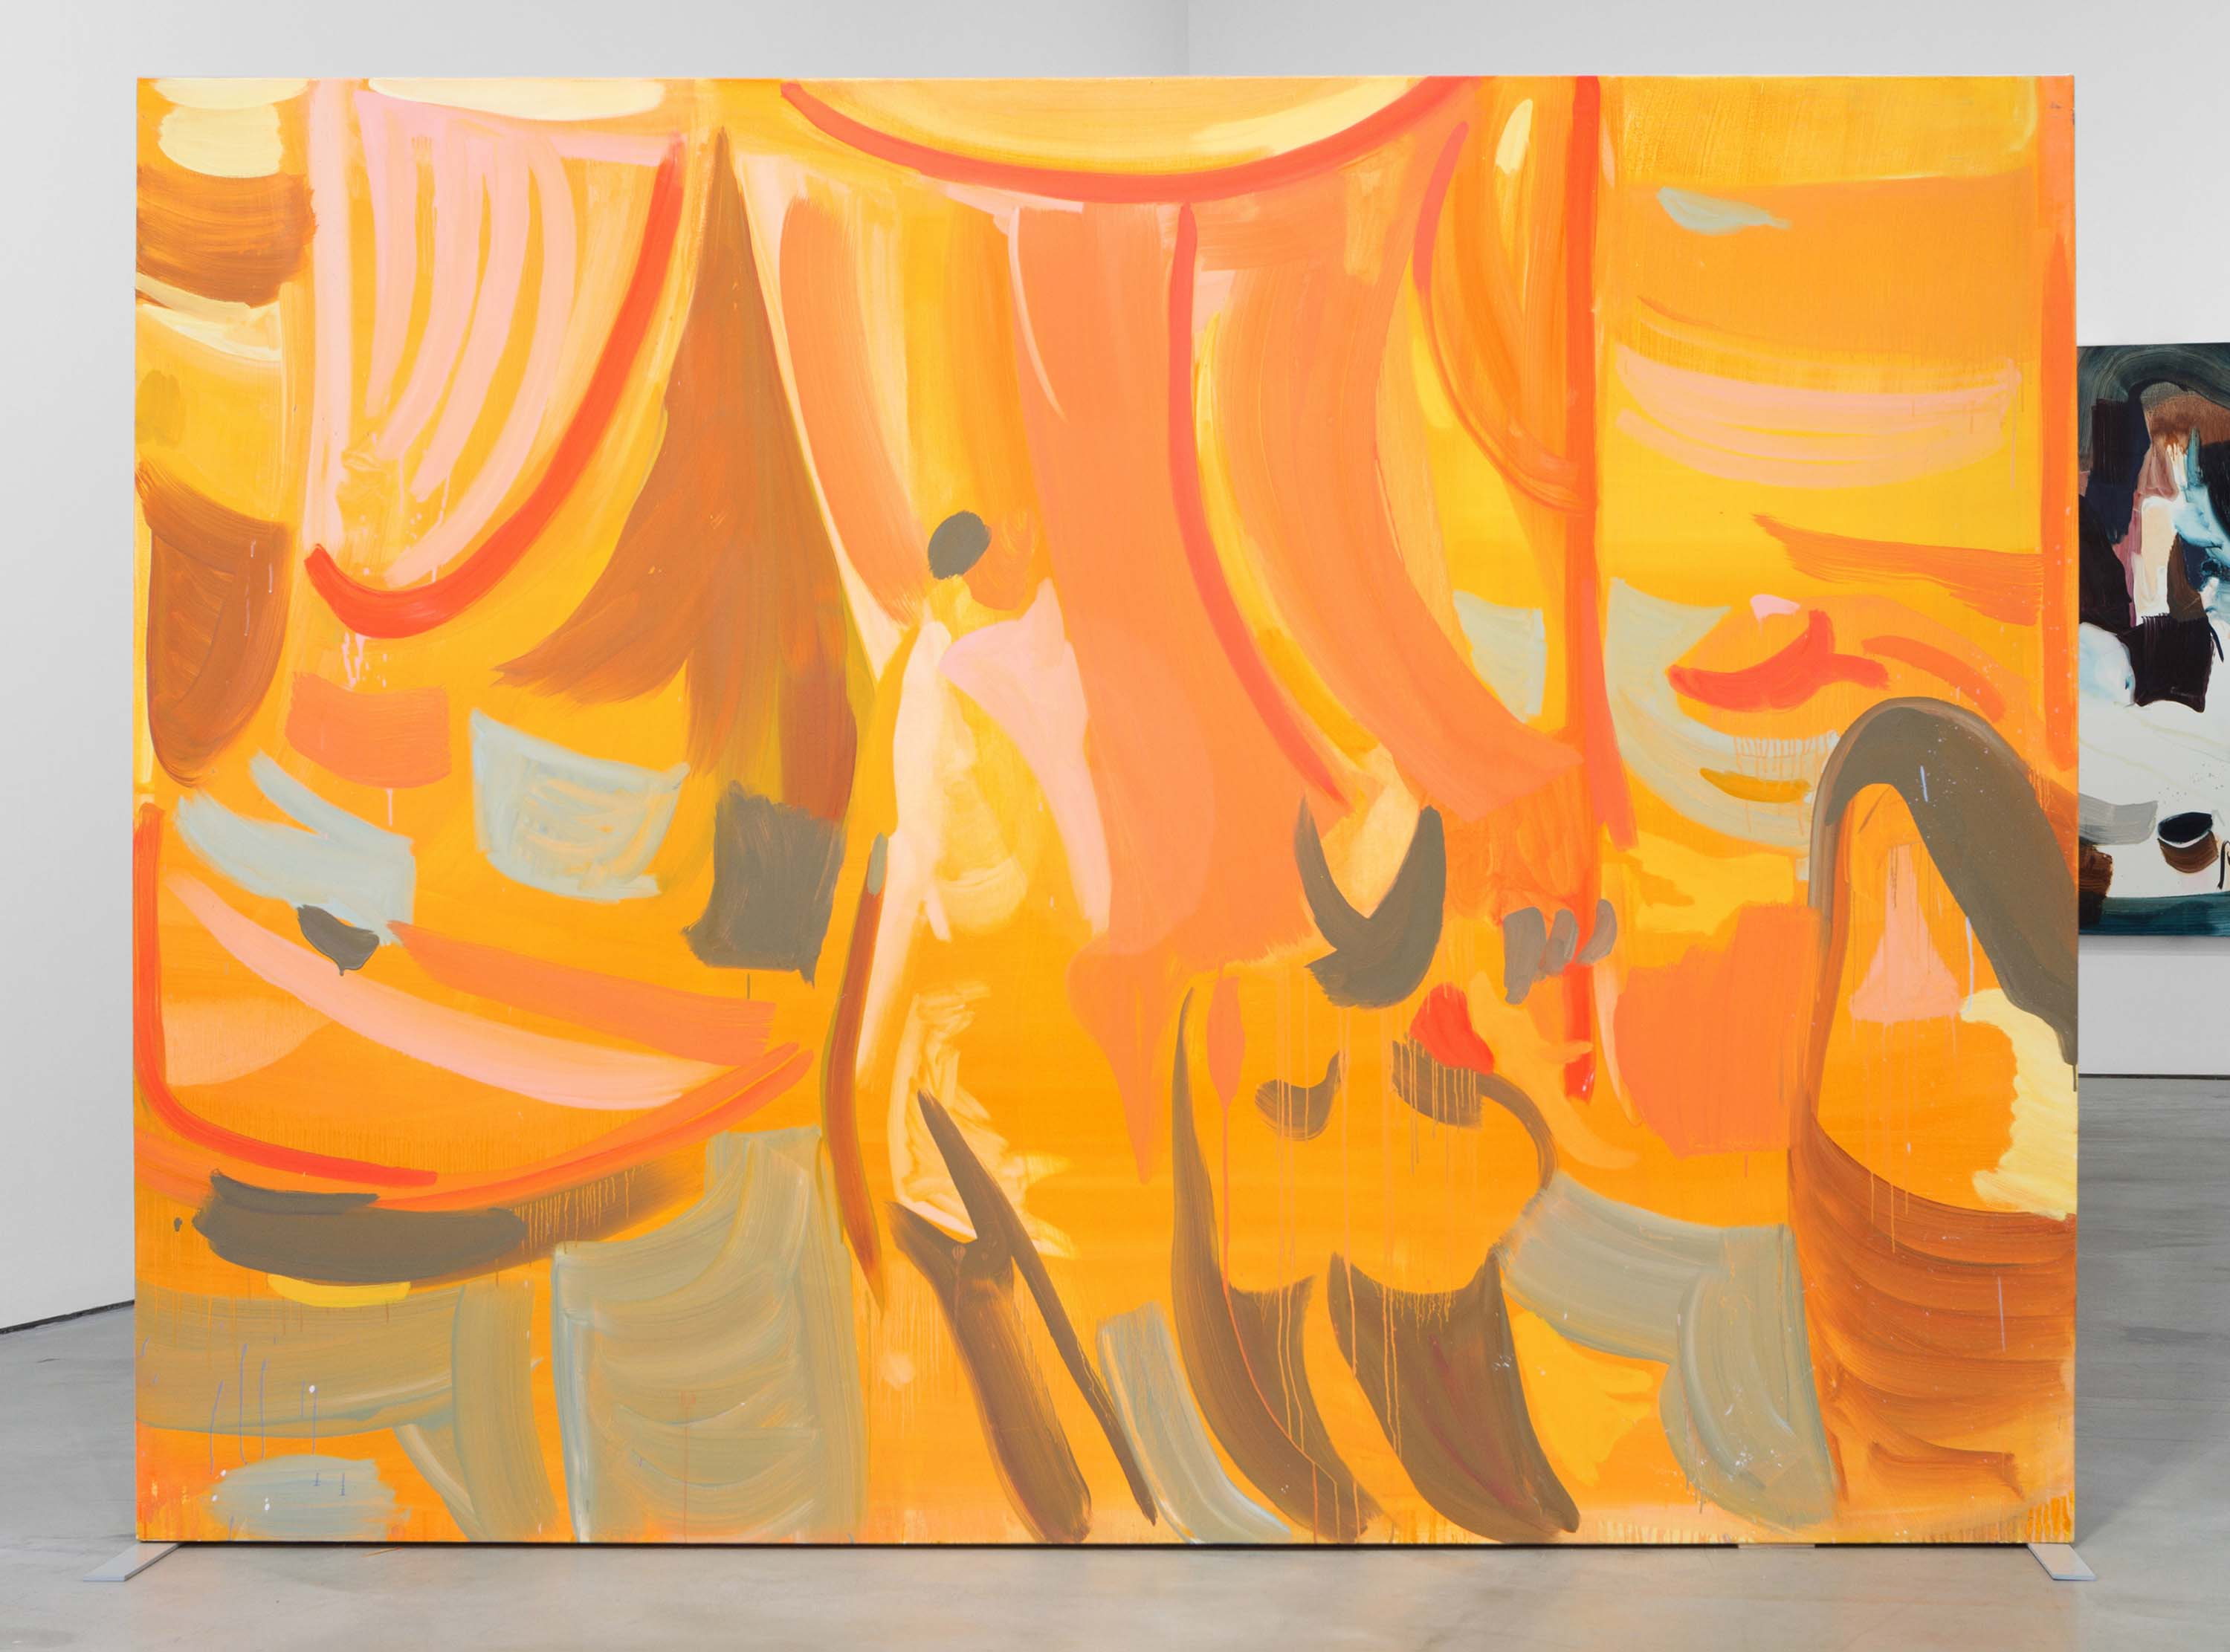 Amy MacKay, assembling a stage with two rooms for dreaming, 2018, oil on canvas, 72 x 96